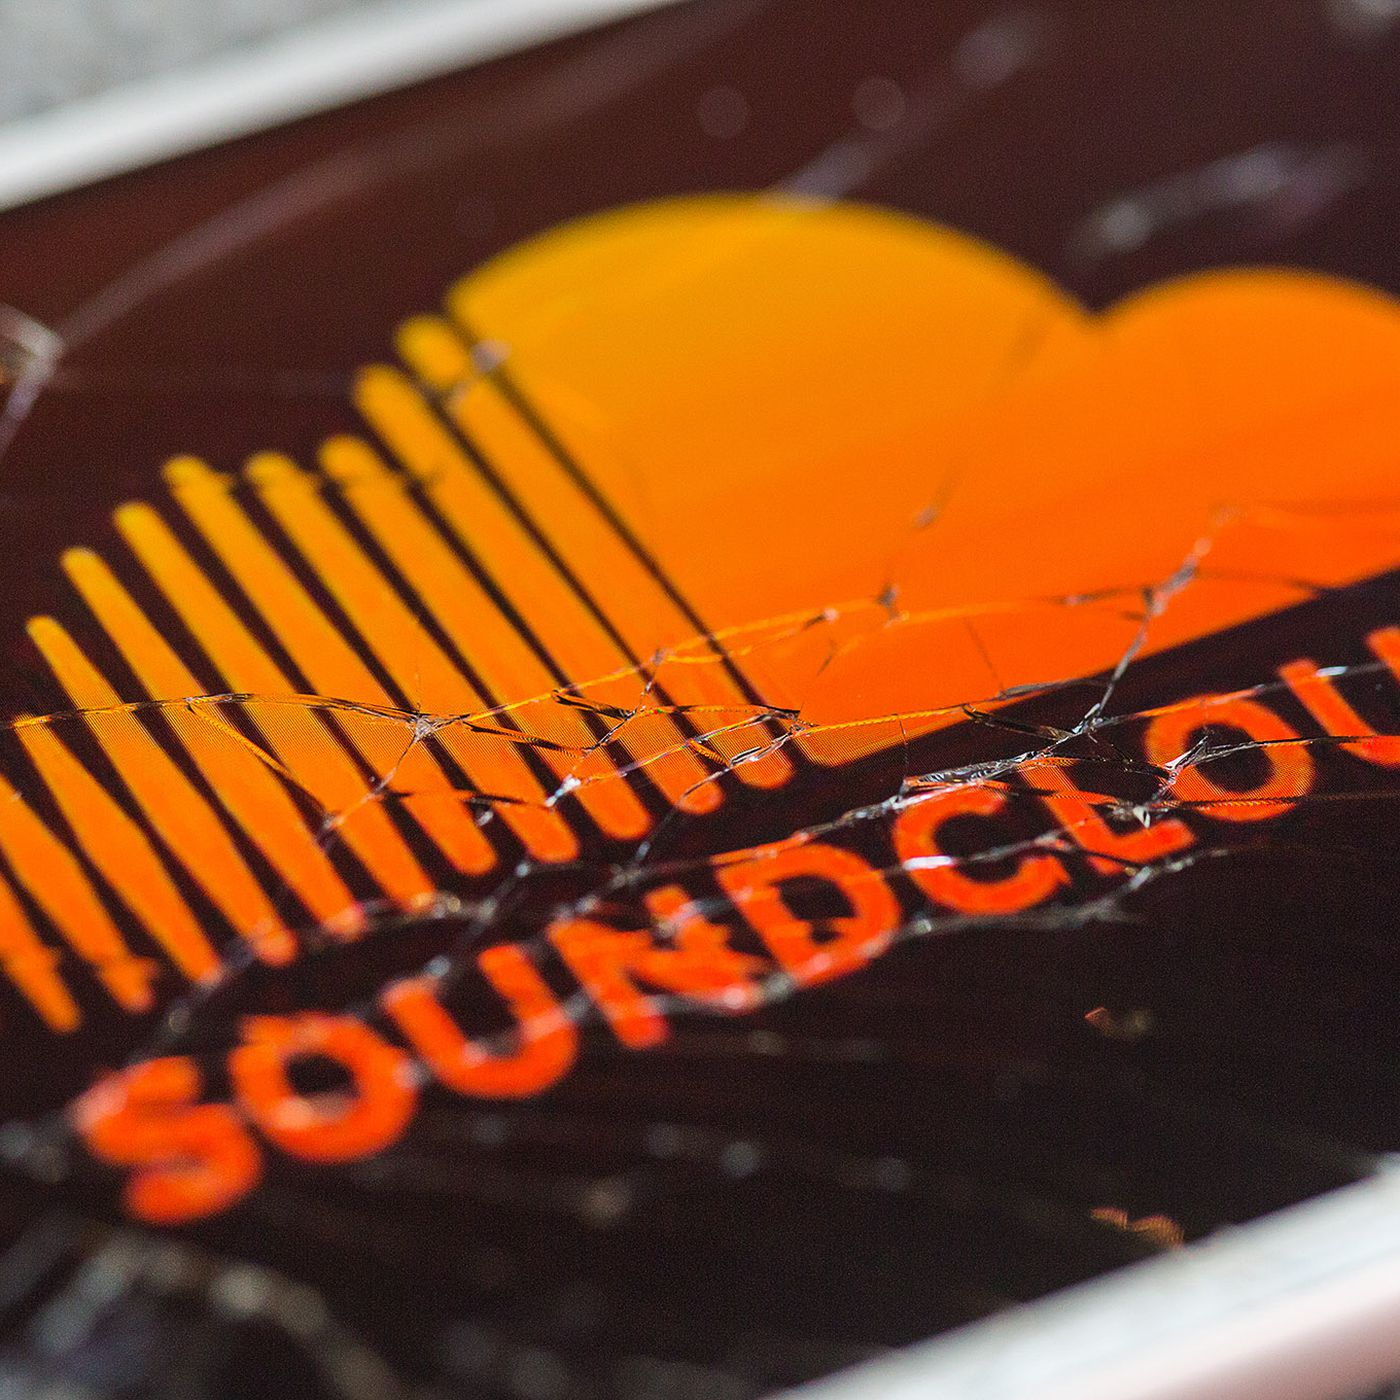 How SoundCloud's broken business model drove artists away